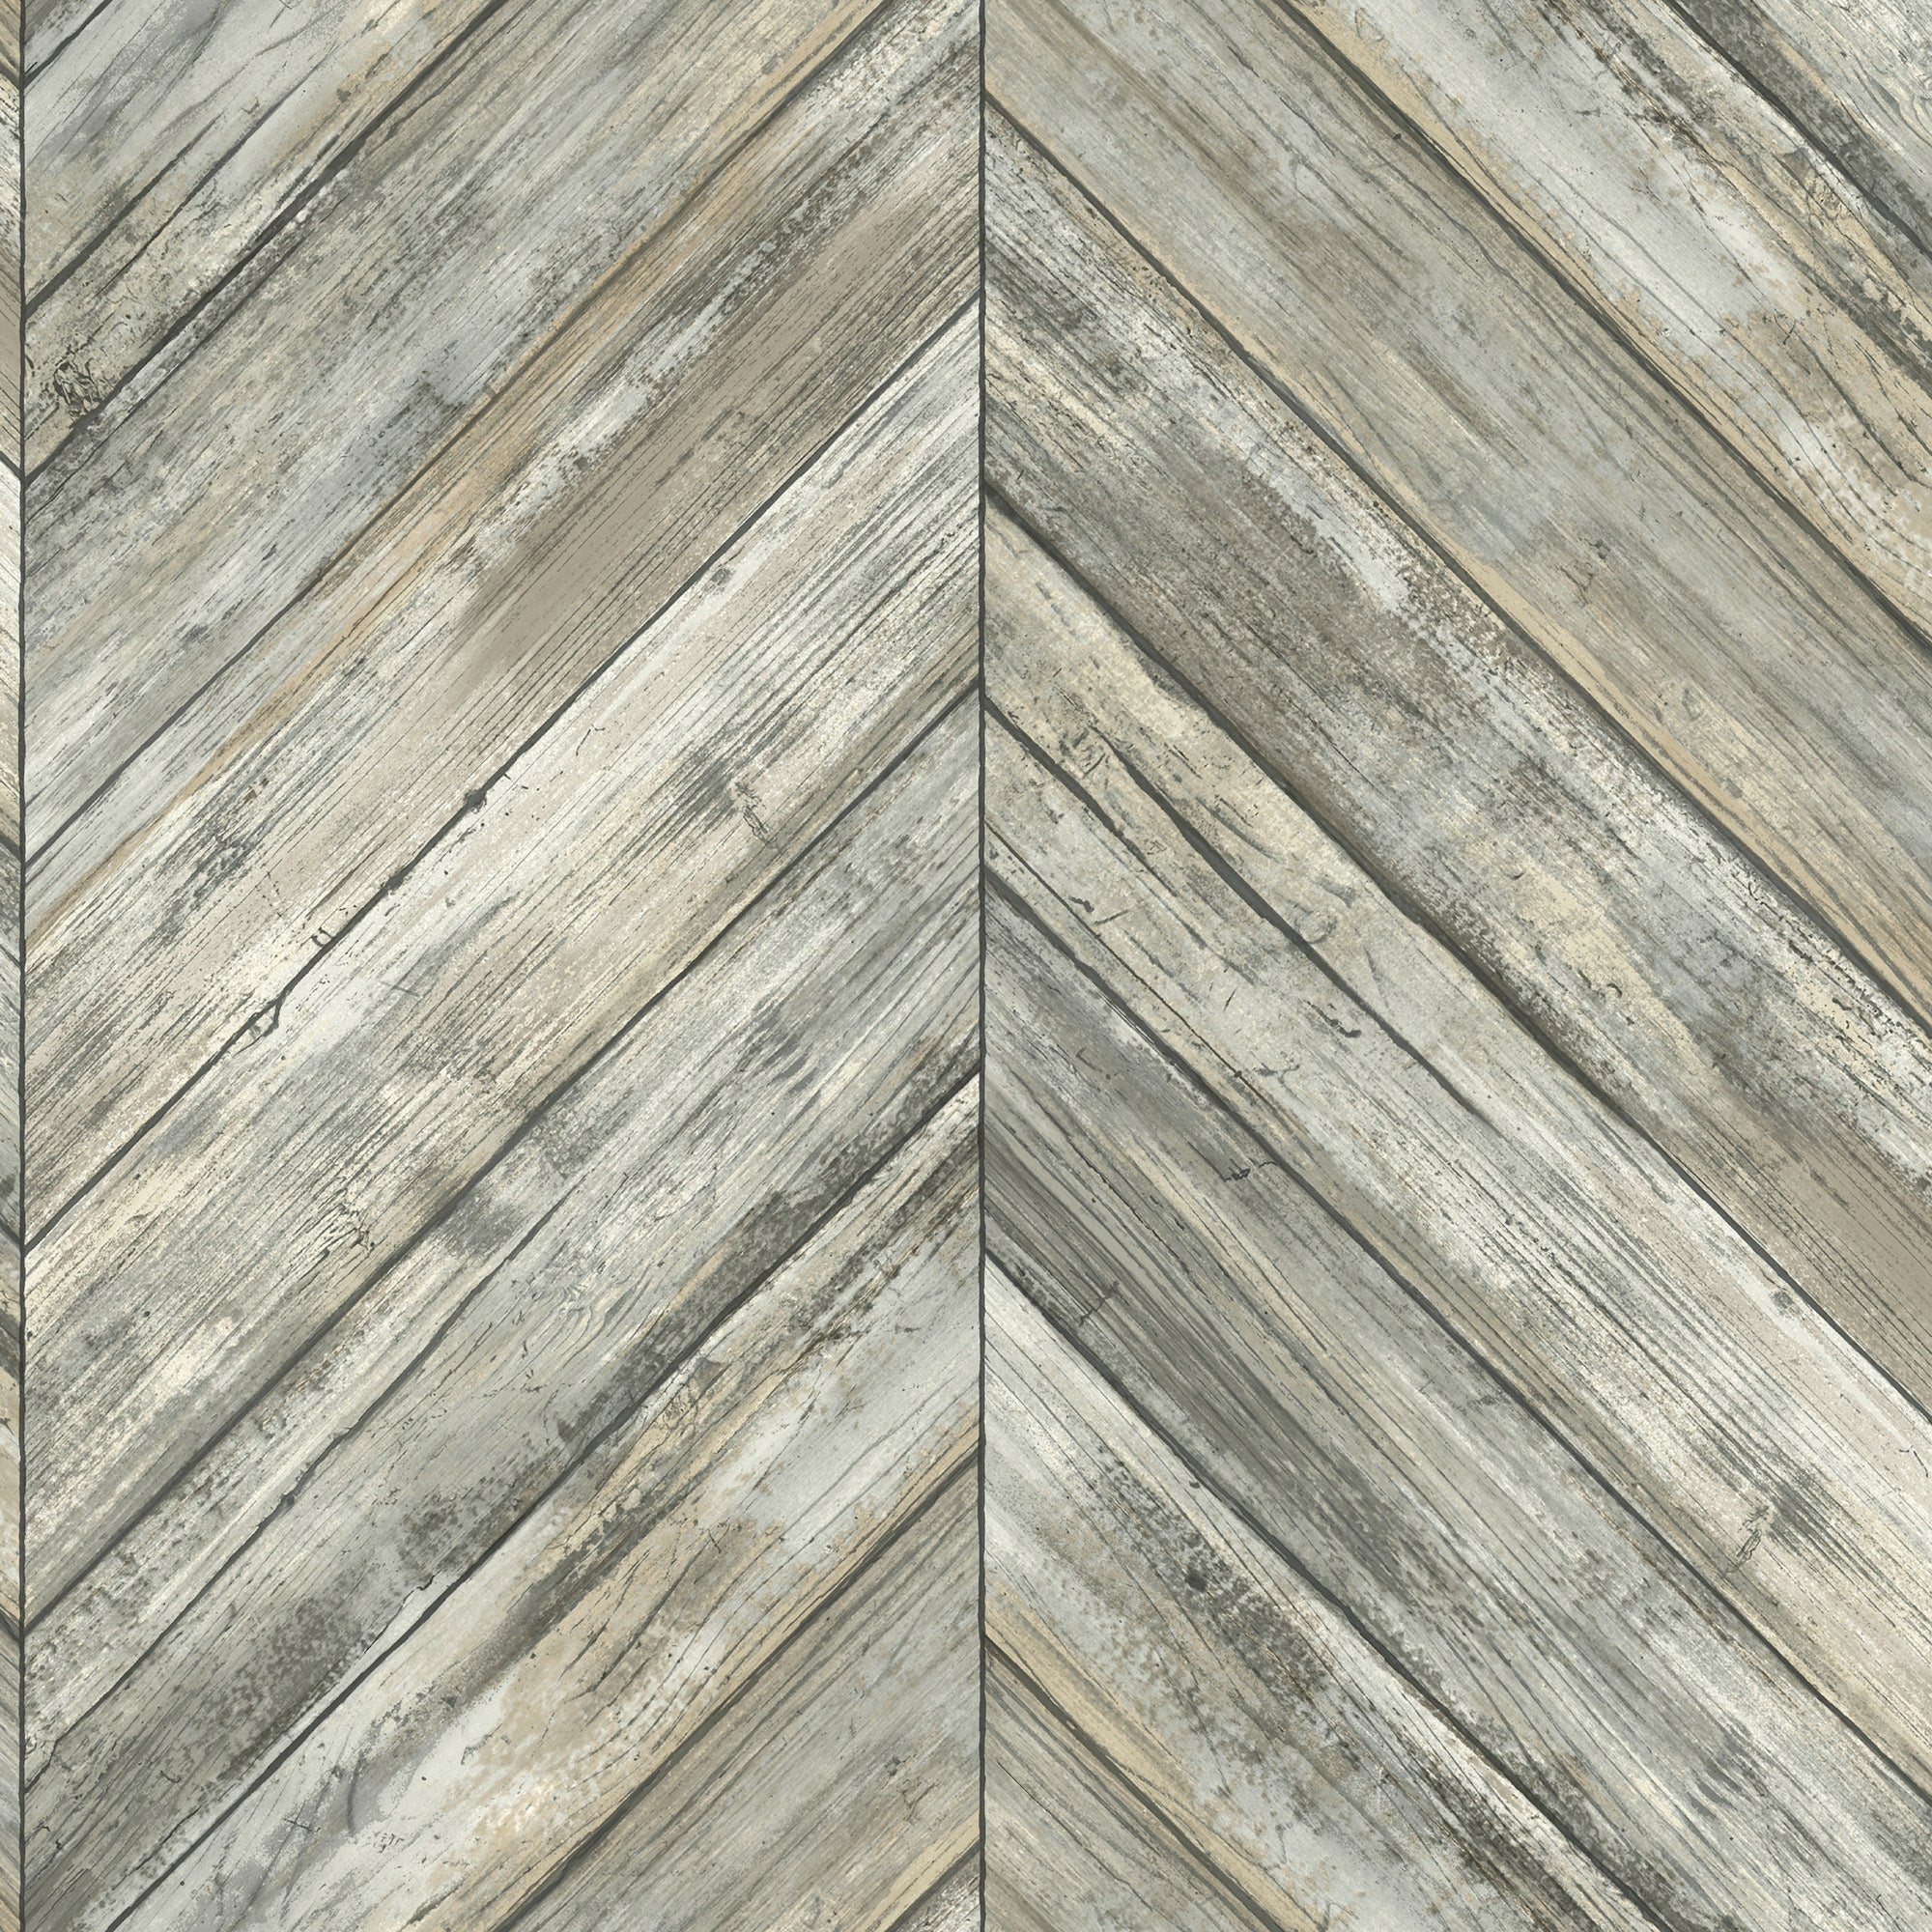 Herringbone Wood Boards Wallpaper - Charcoal